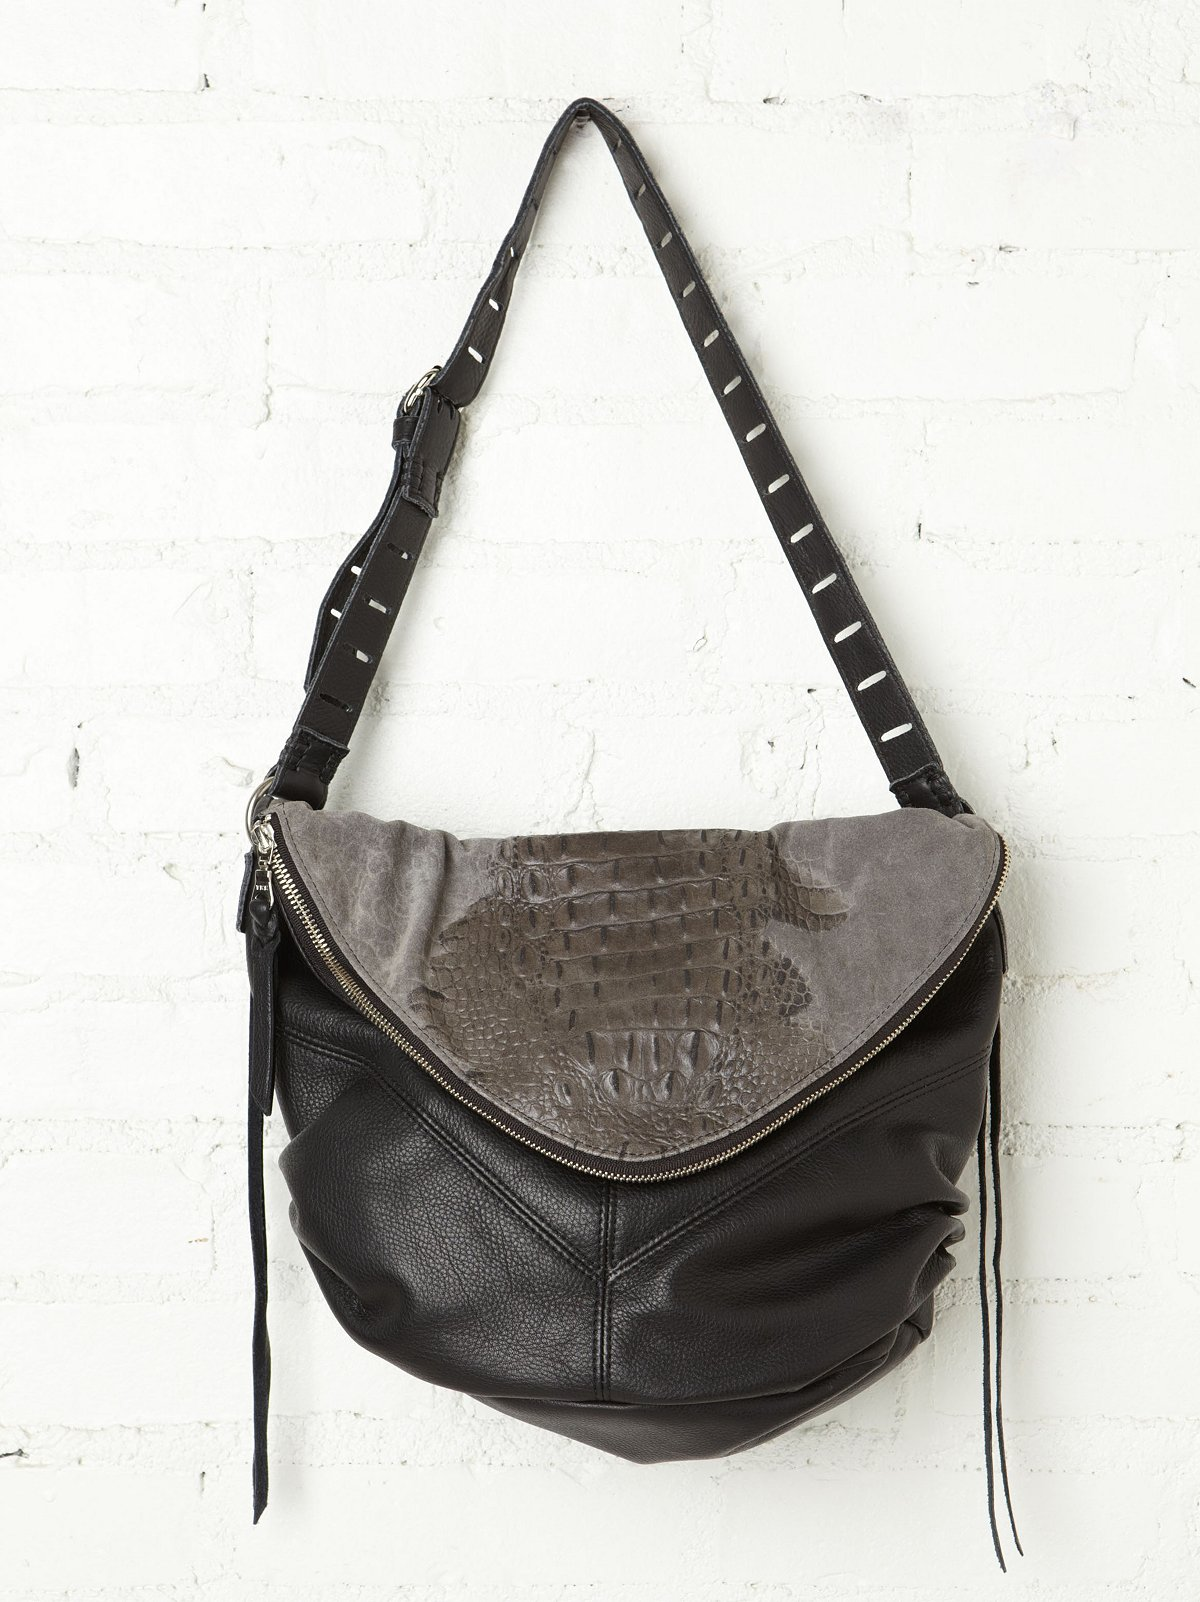 Browning Embossed Bag